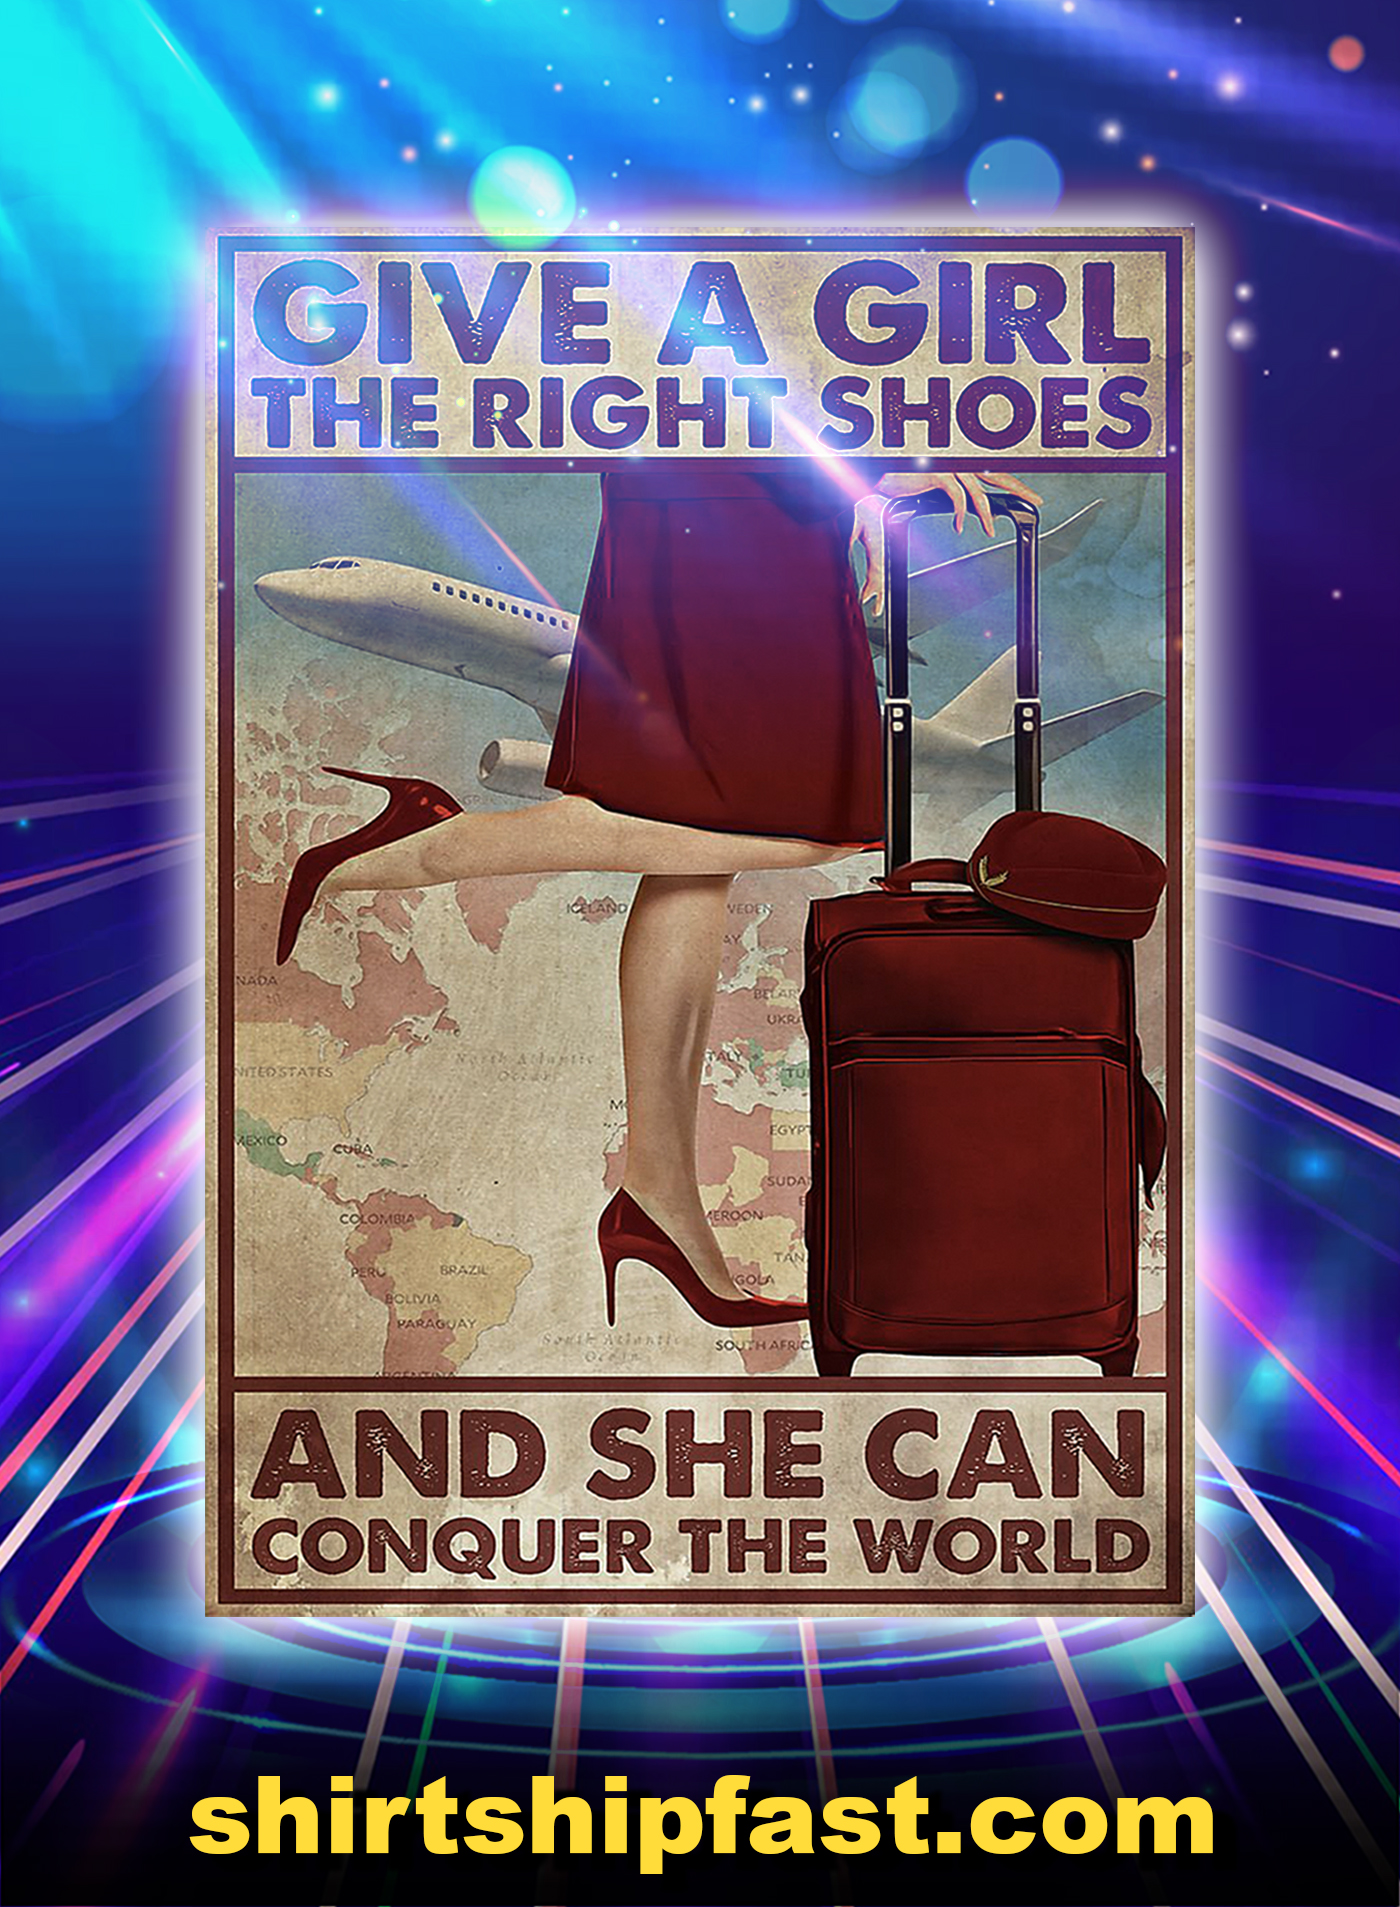 Flight attendant give a girl the right shoes and she can conquer the world poster - A1